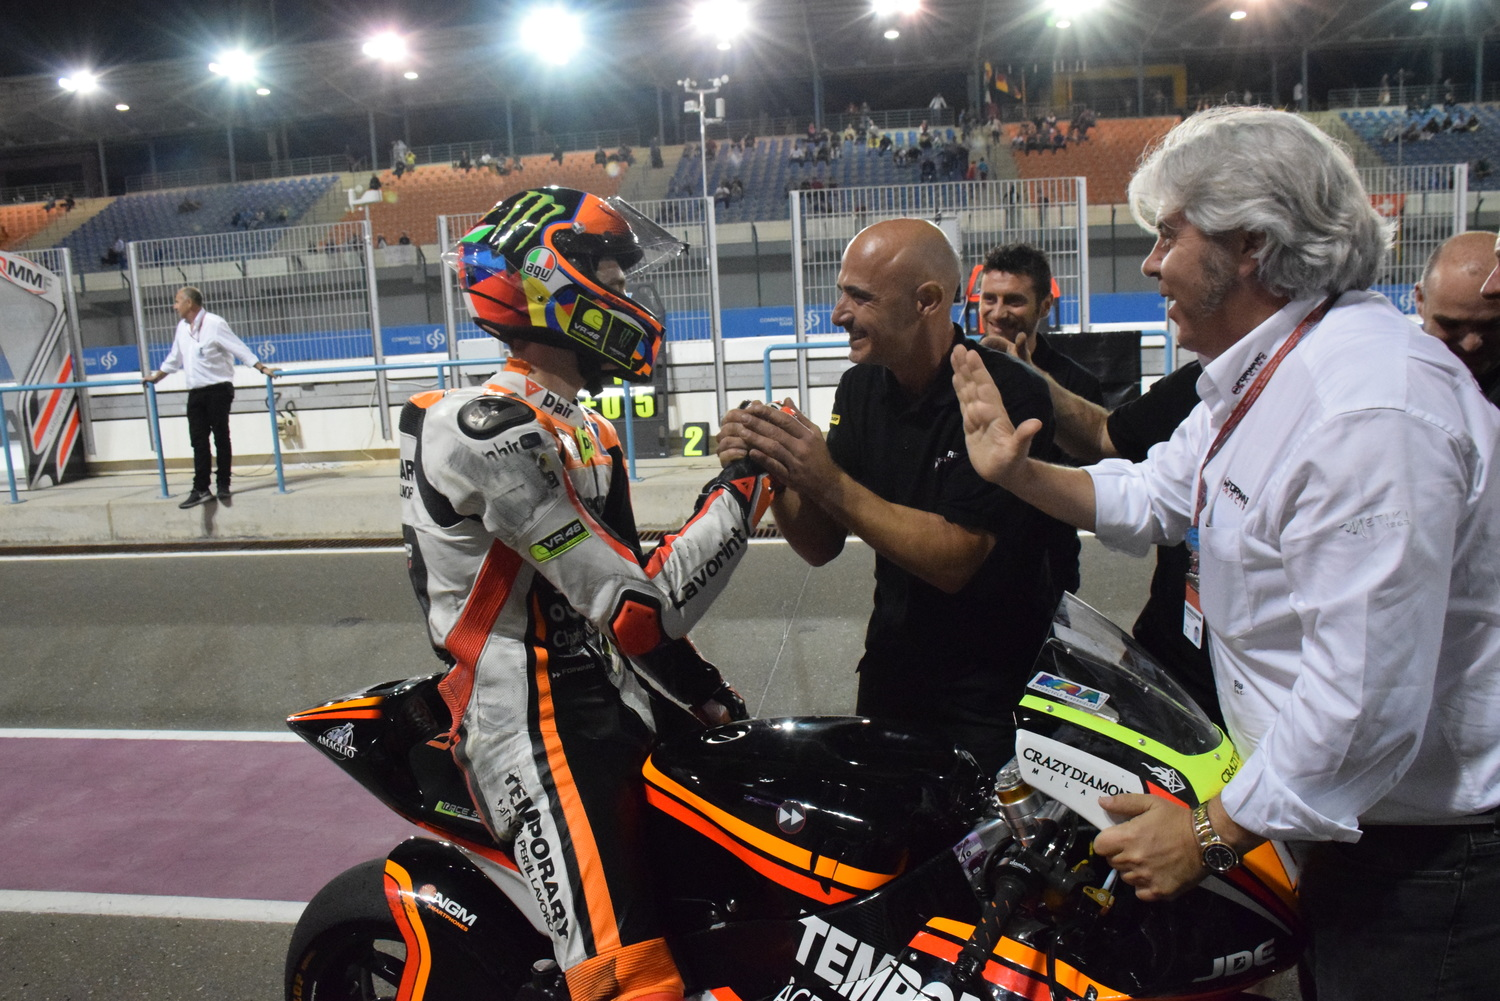 Luca Marini tenth after a superb debut